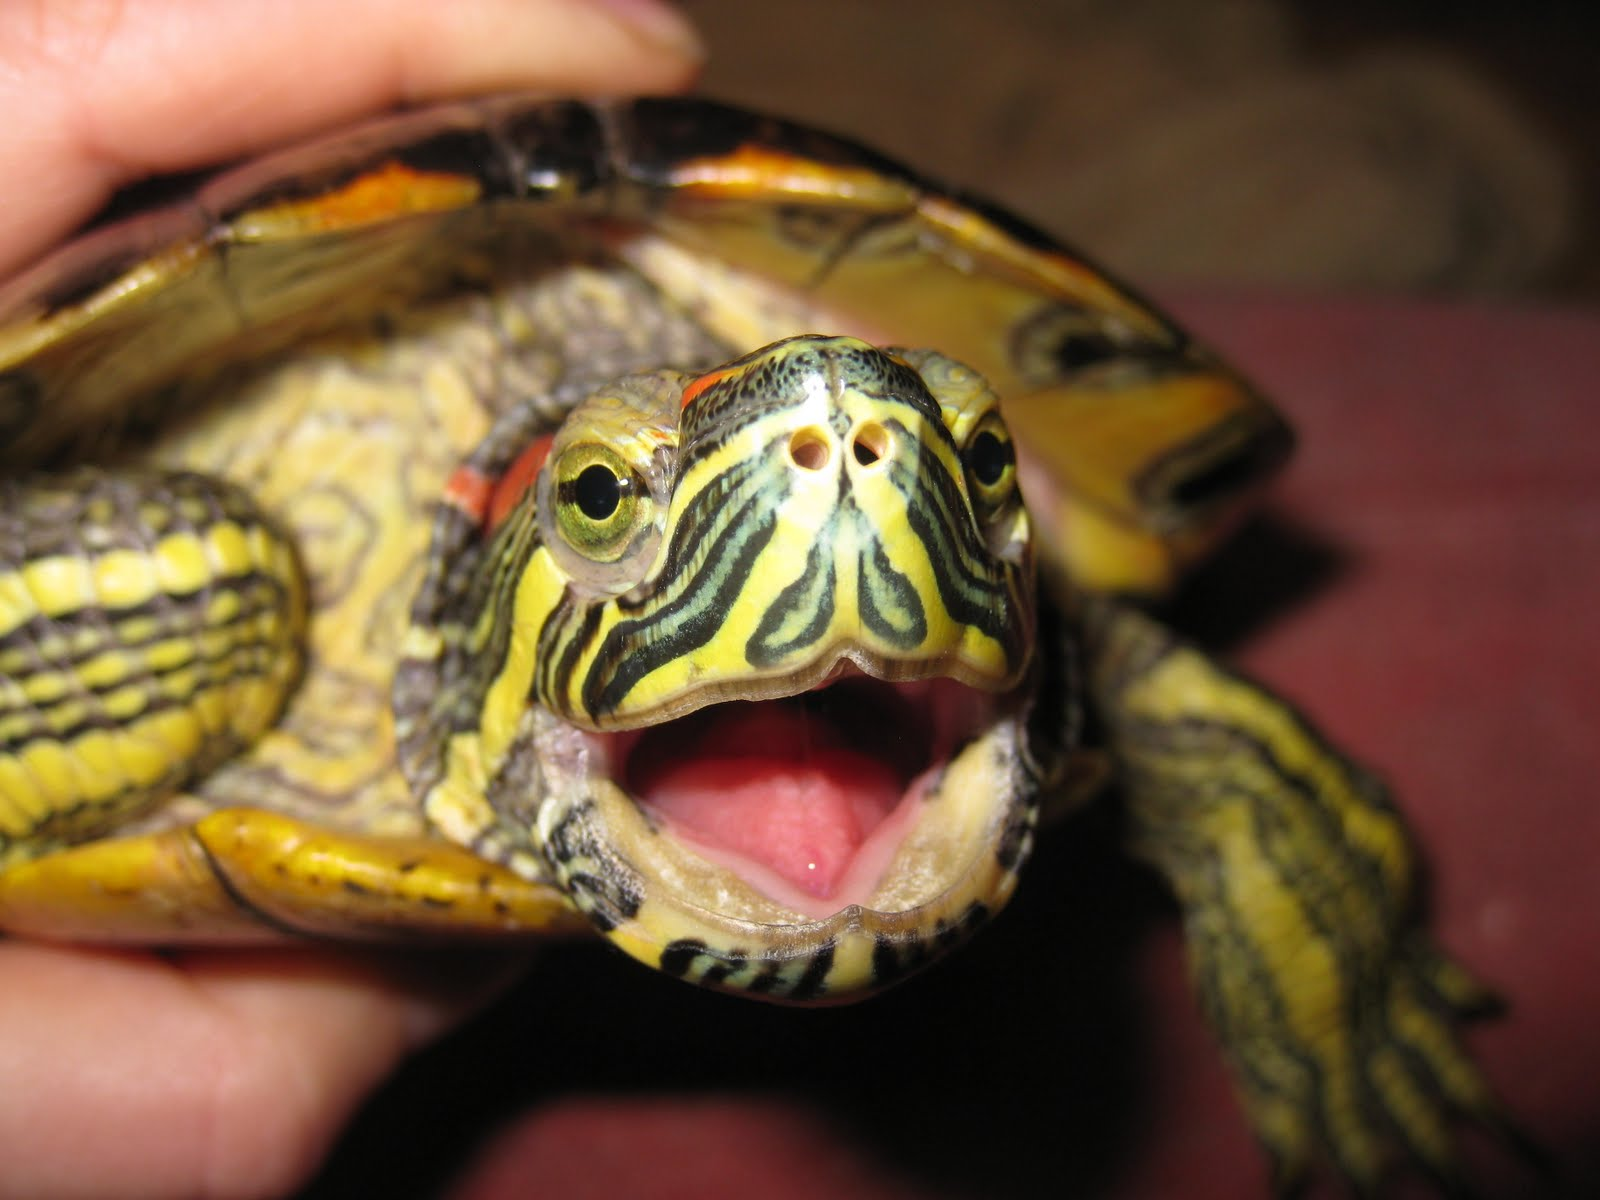 ... Random Thoughts & Ponderings: Moods of the red eared slider: Annoyance